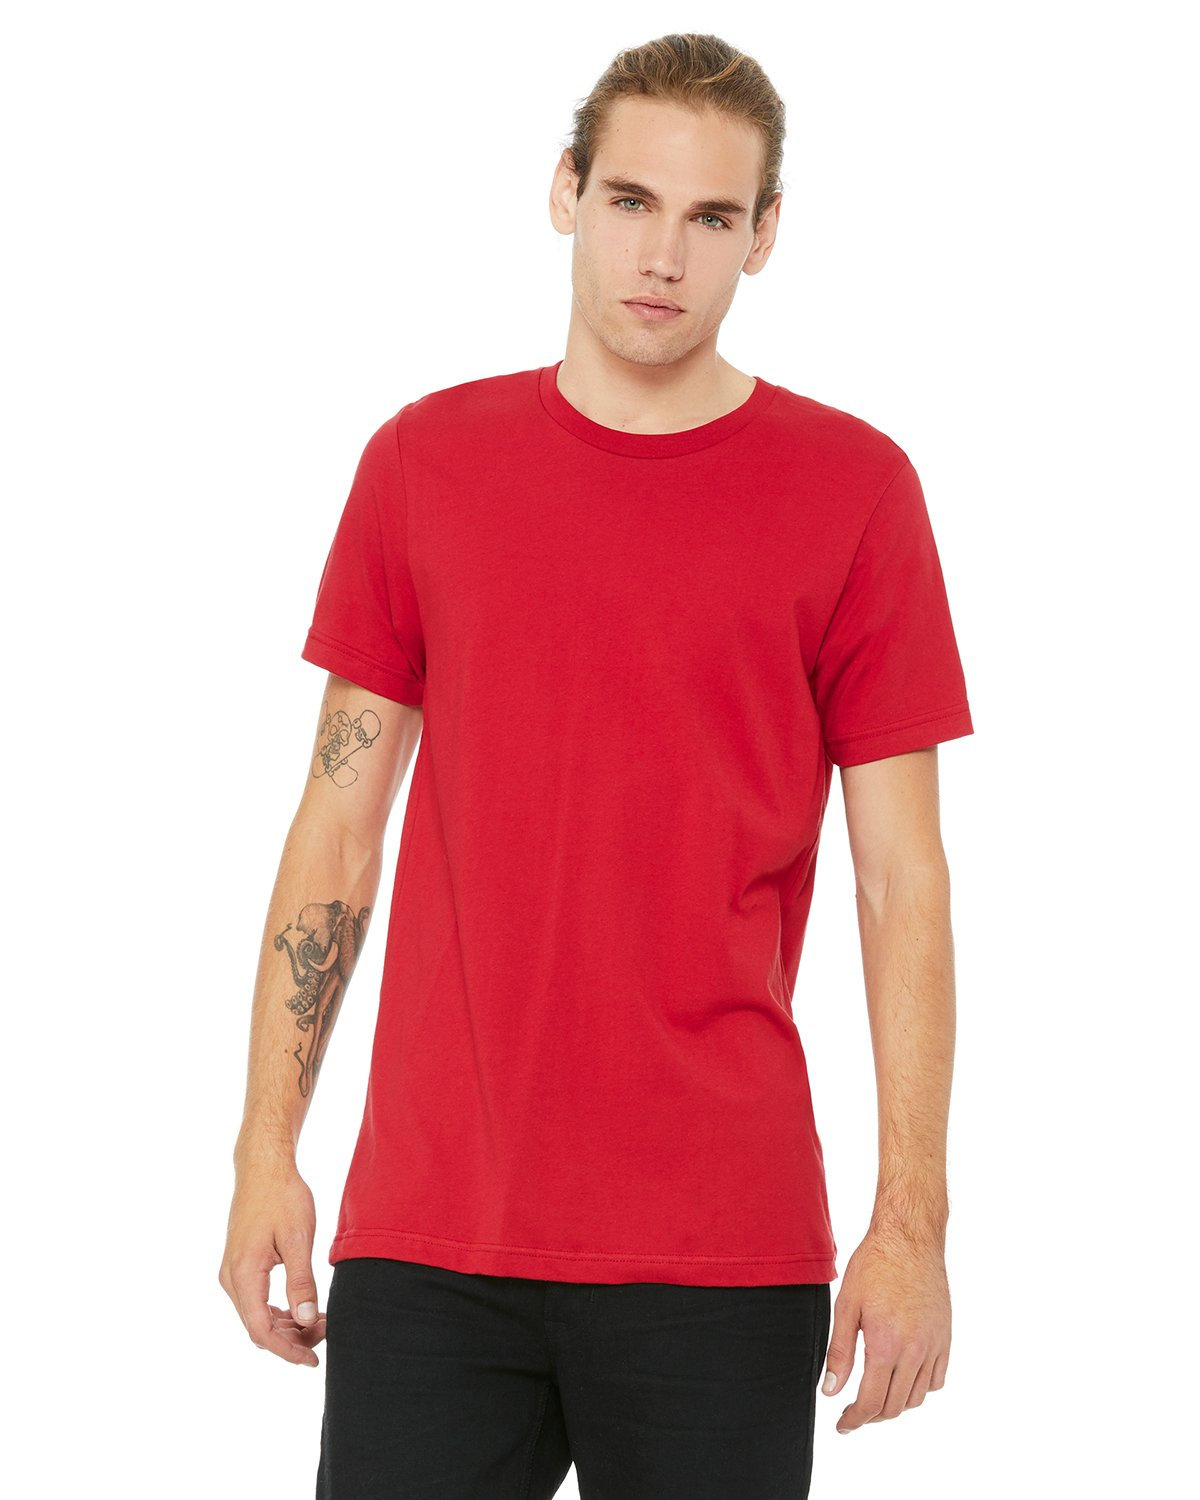 Bella Canvas RED Soft Style Unisex Jersey T-Shirt